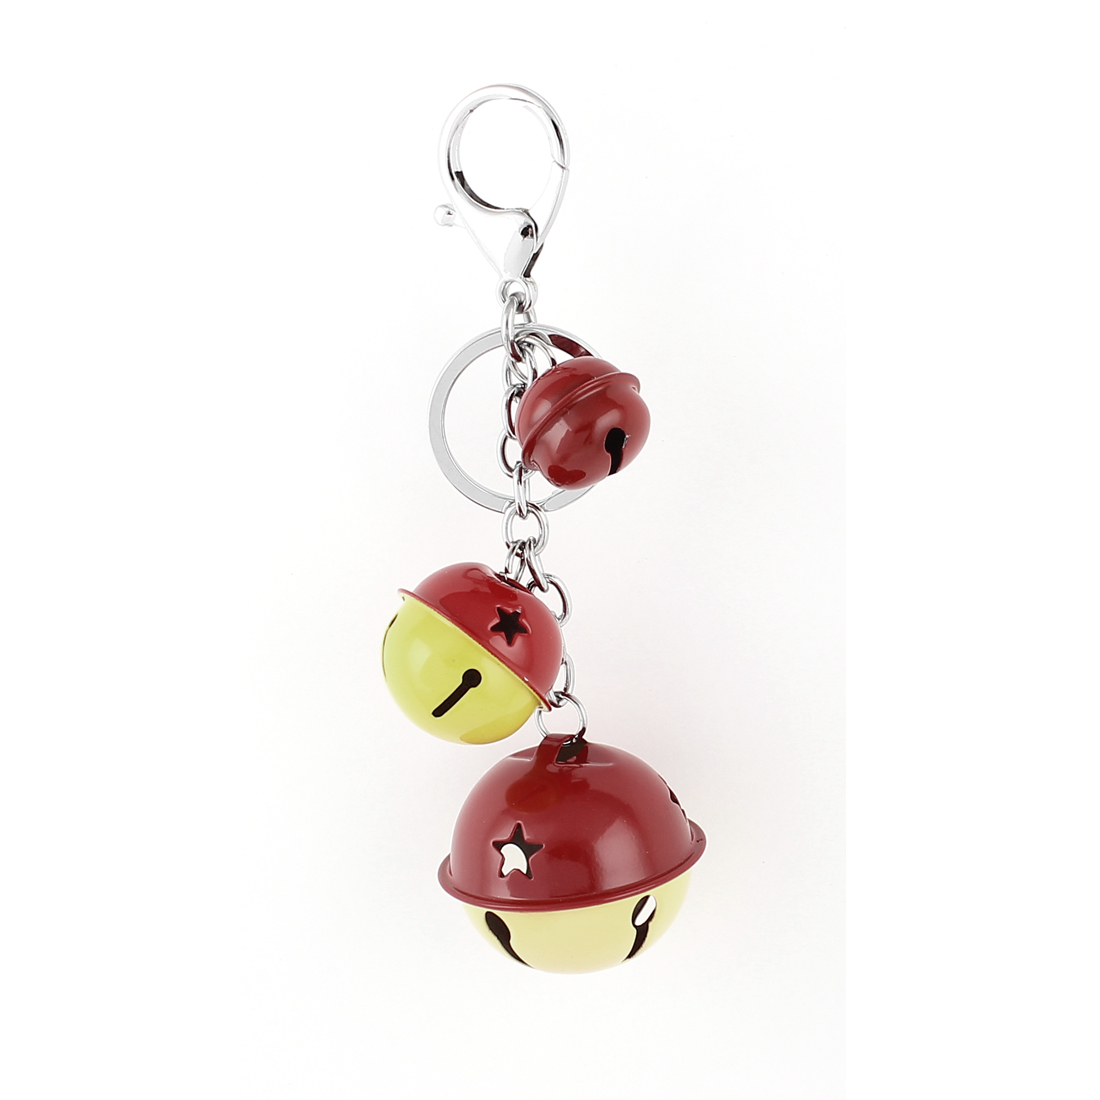 Bells Pendant Swivel Lobster Clasp Keyring Keychain Key Chain Ring Red Yellow